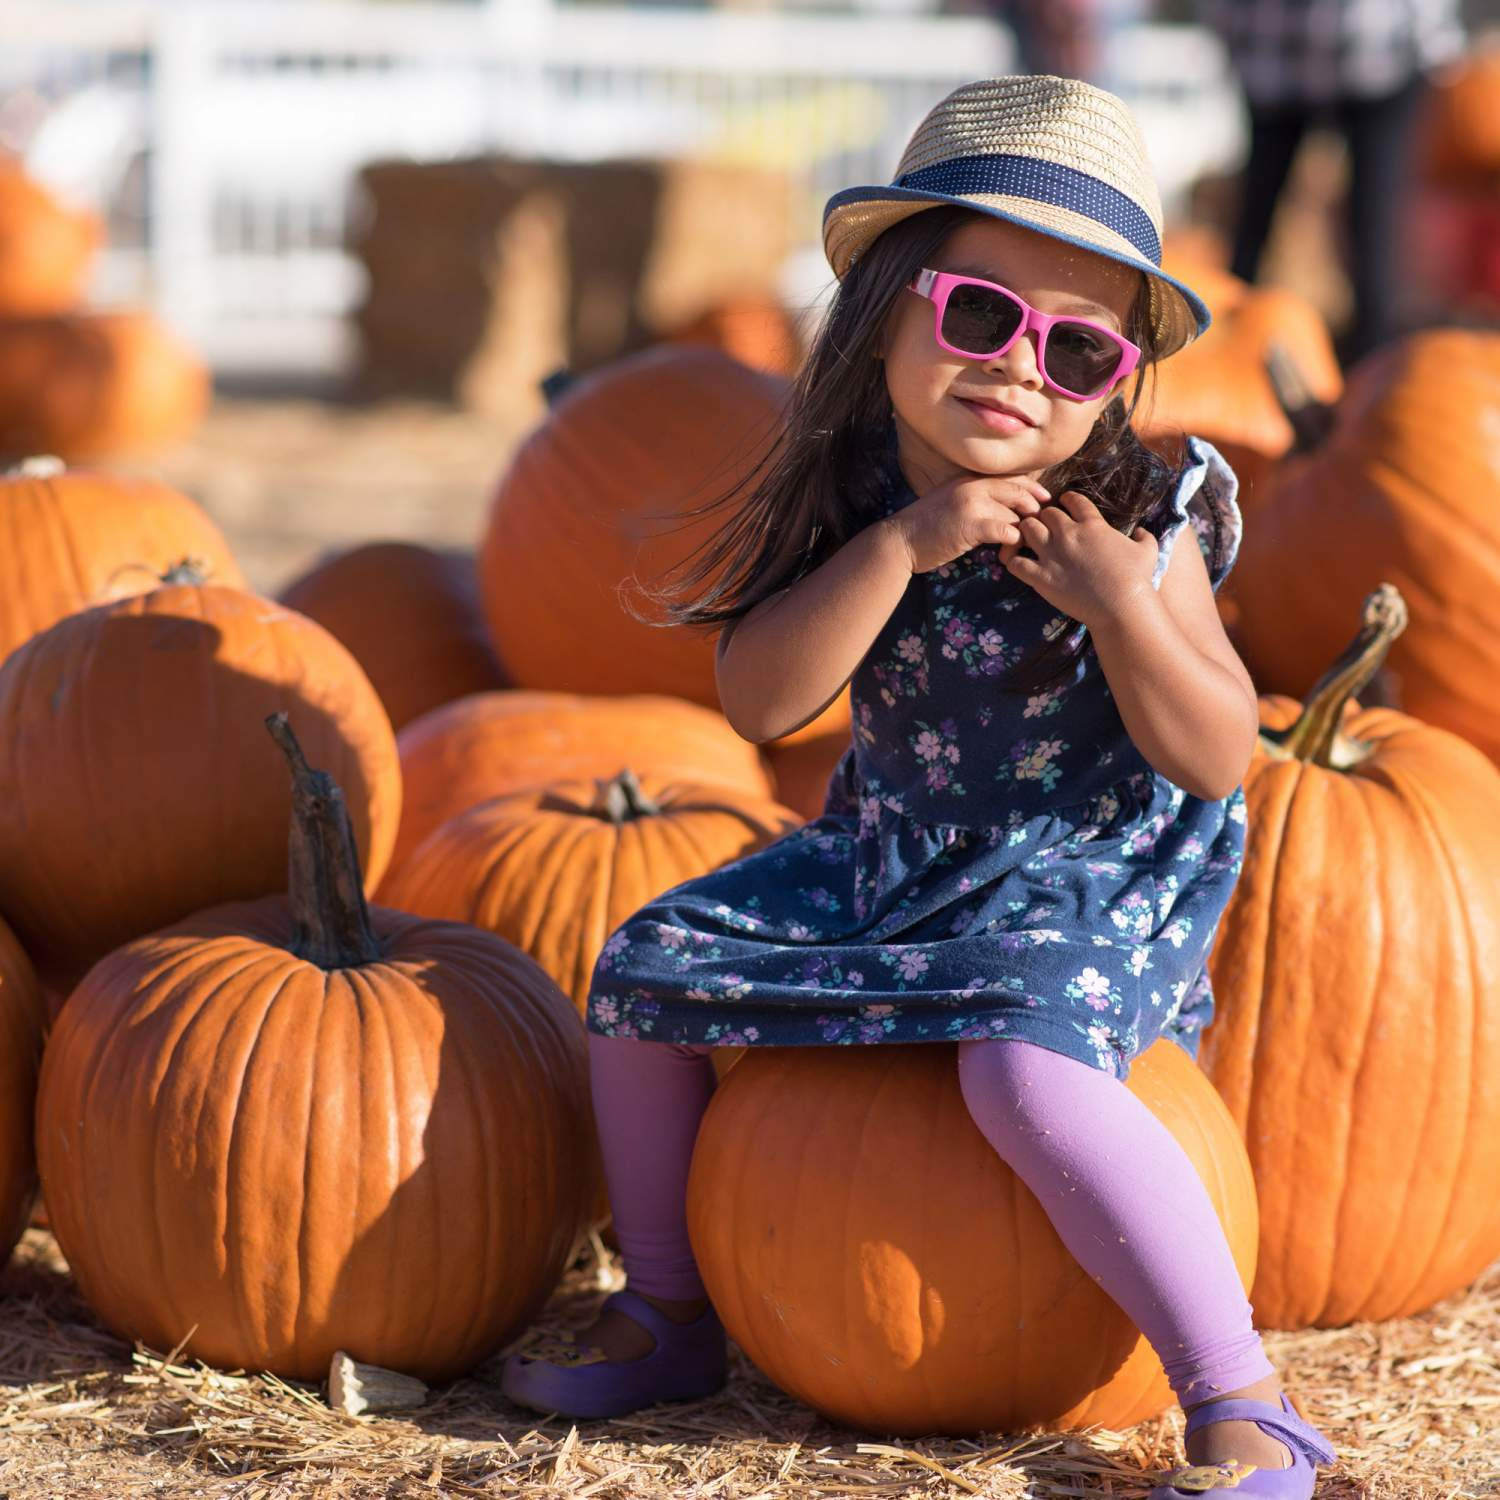 Girl at a pumpkin patch